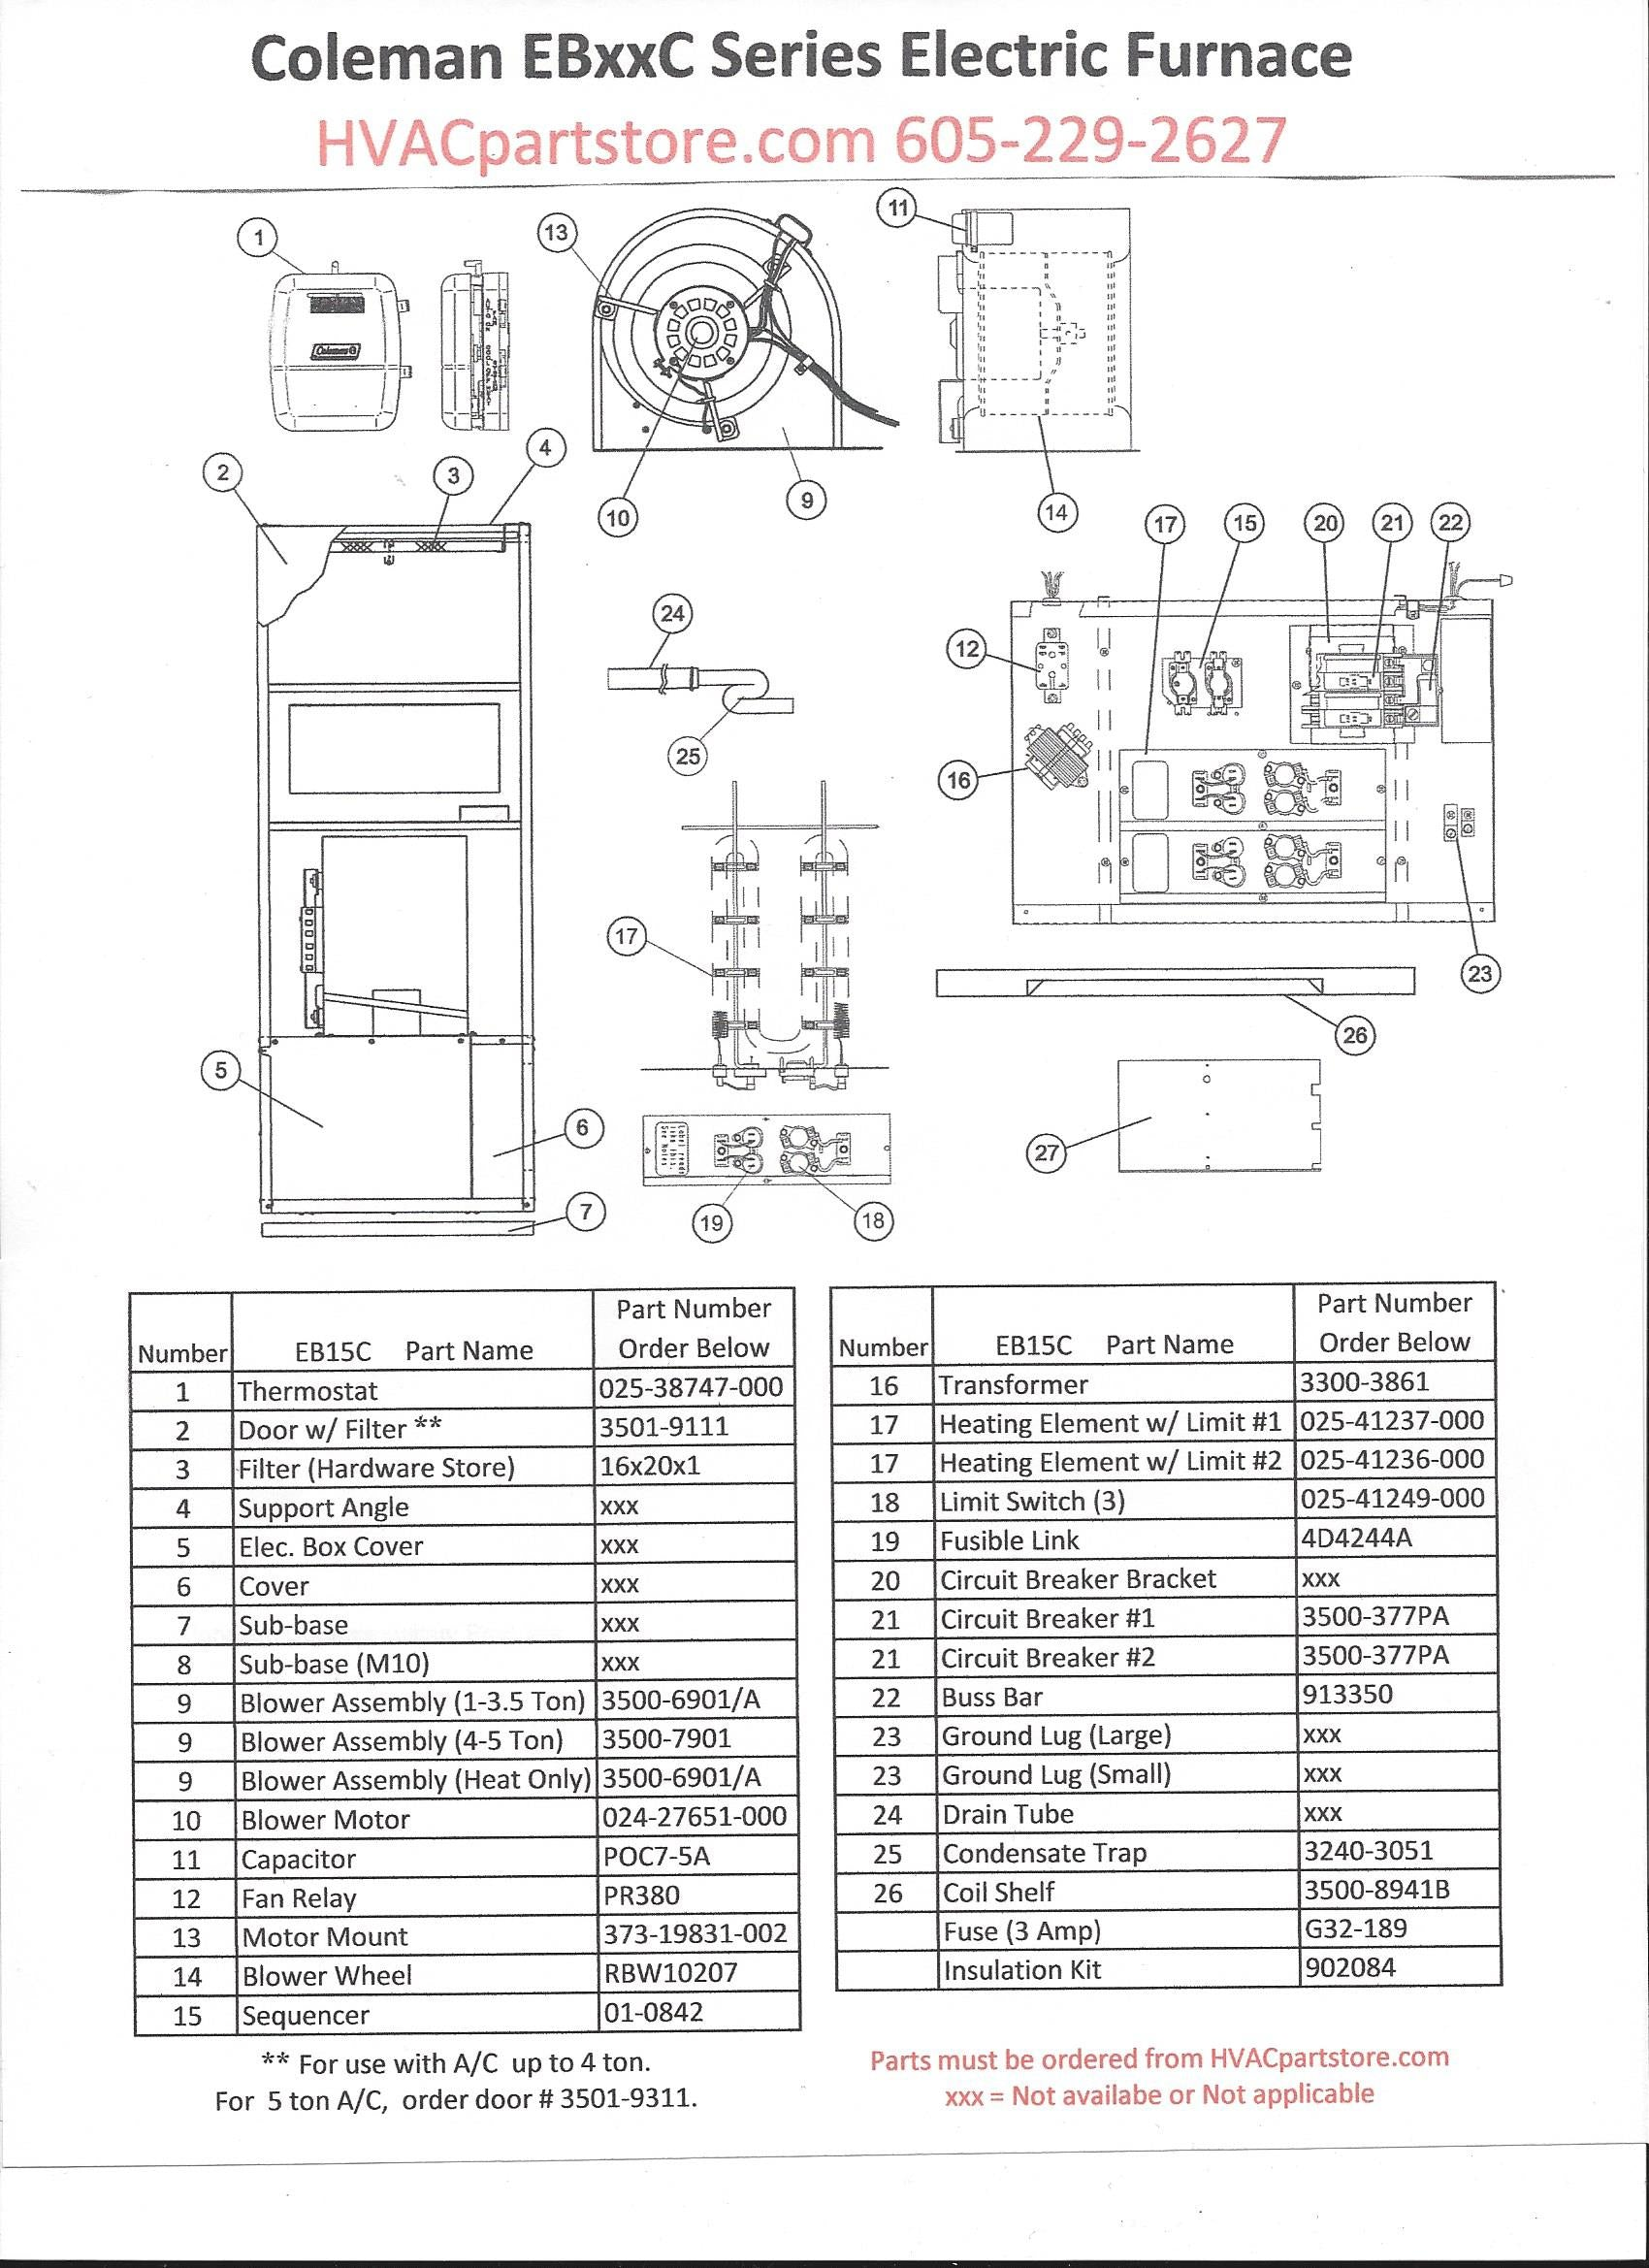 eb15c coleman electric furnace parts hvacpartstore rh hvacpartstore myshopify com Mobile Home Furnace Wiring Diagram coleman evcon electric furnace wiring diagram